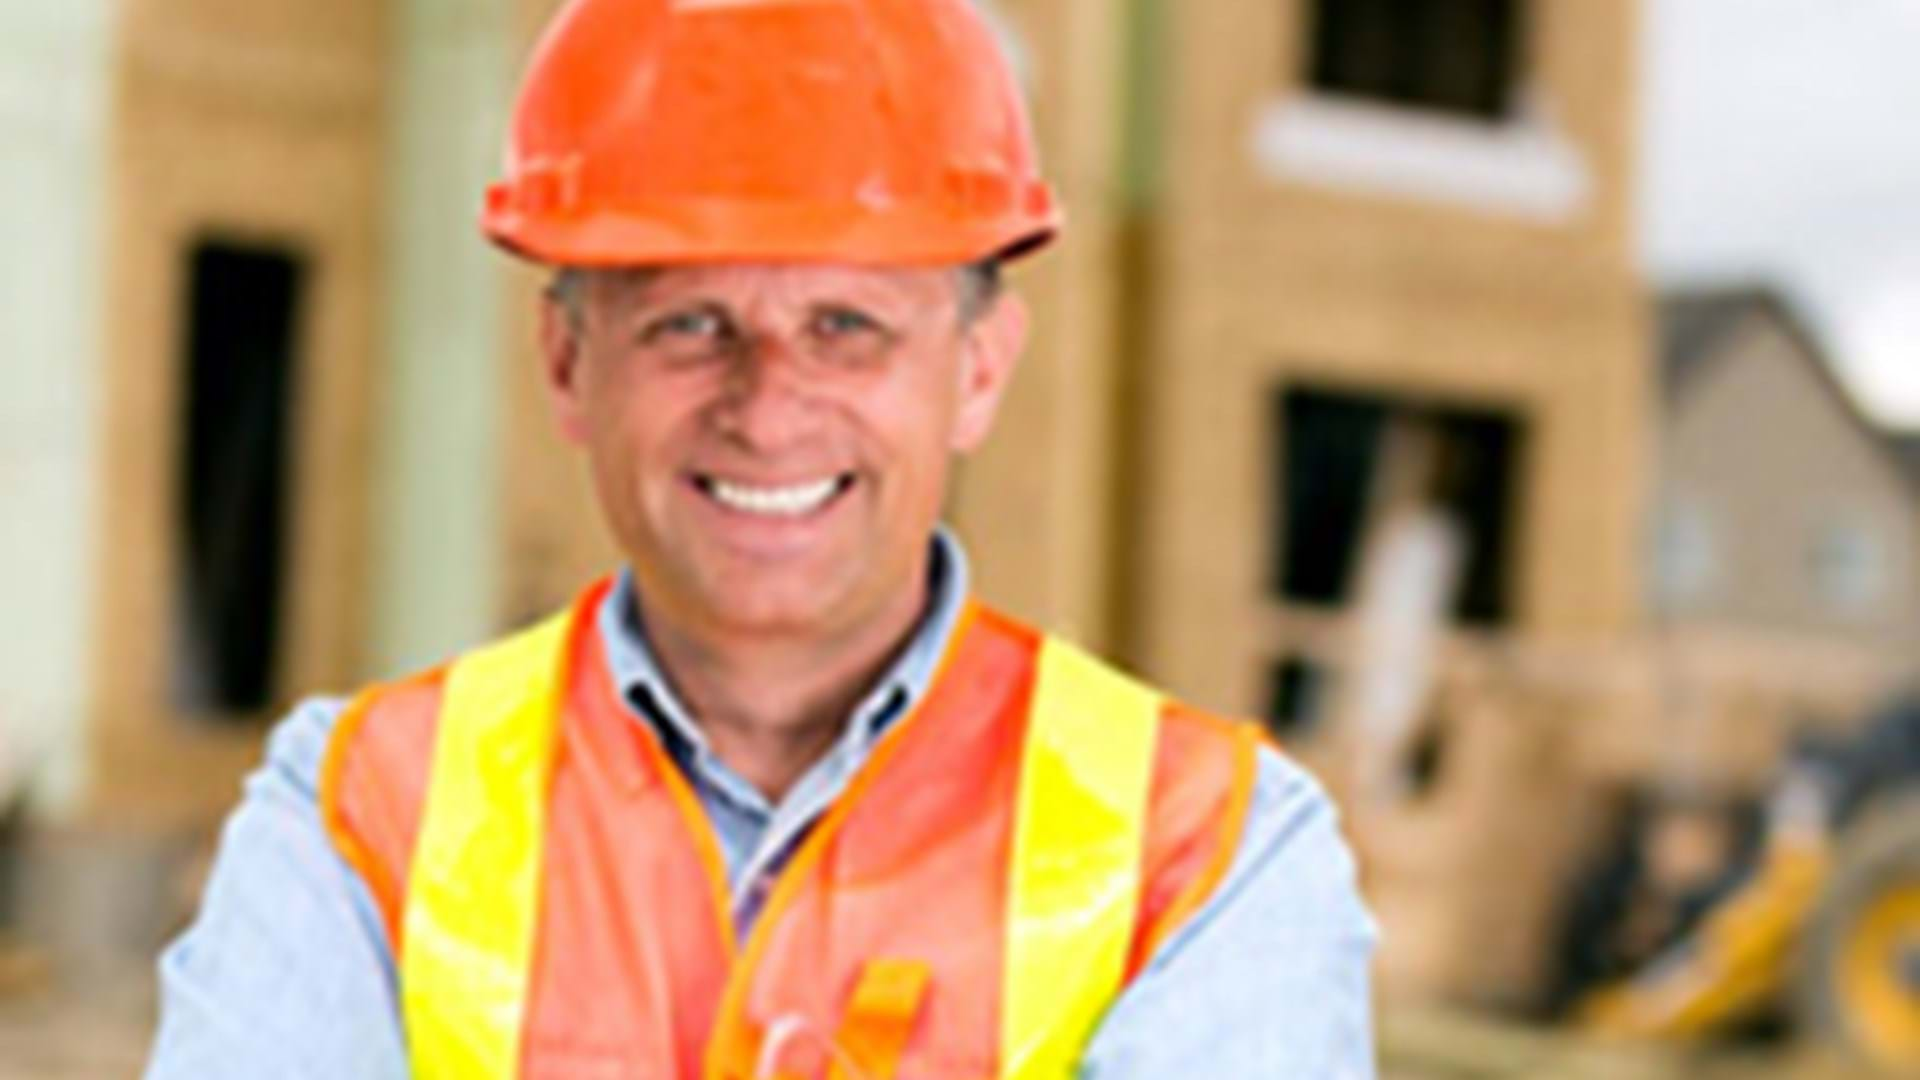 A smiling man wearing a hard hat and a high-vis vest.